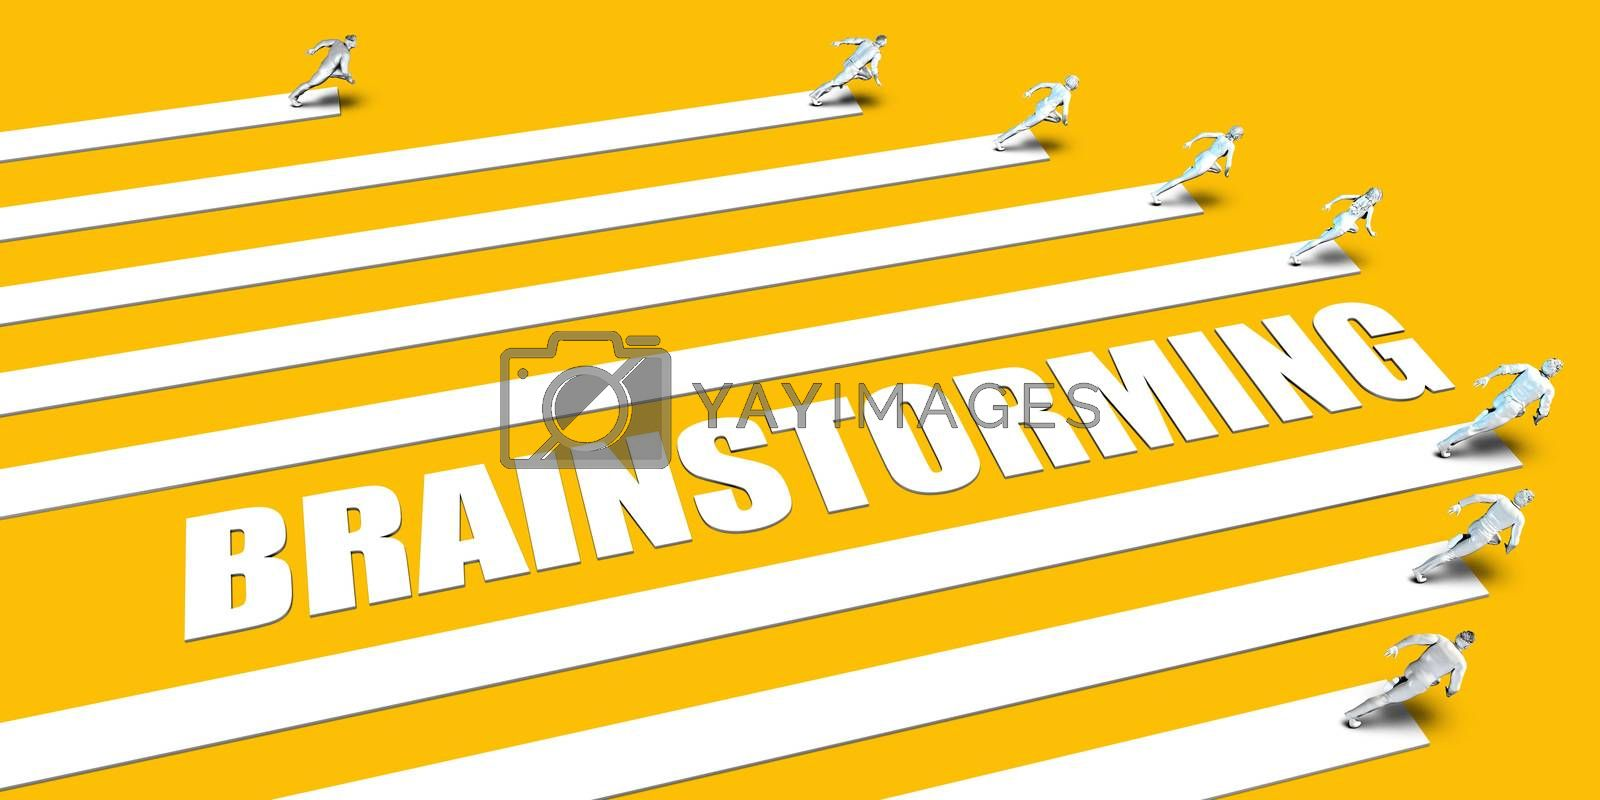 Brainstorming Concept with Business People Running on Yellow